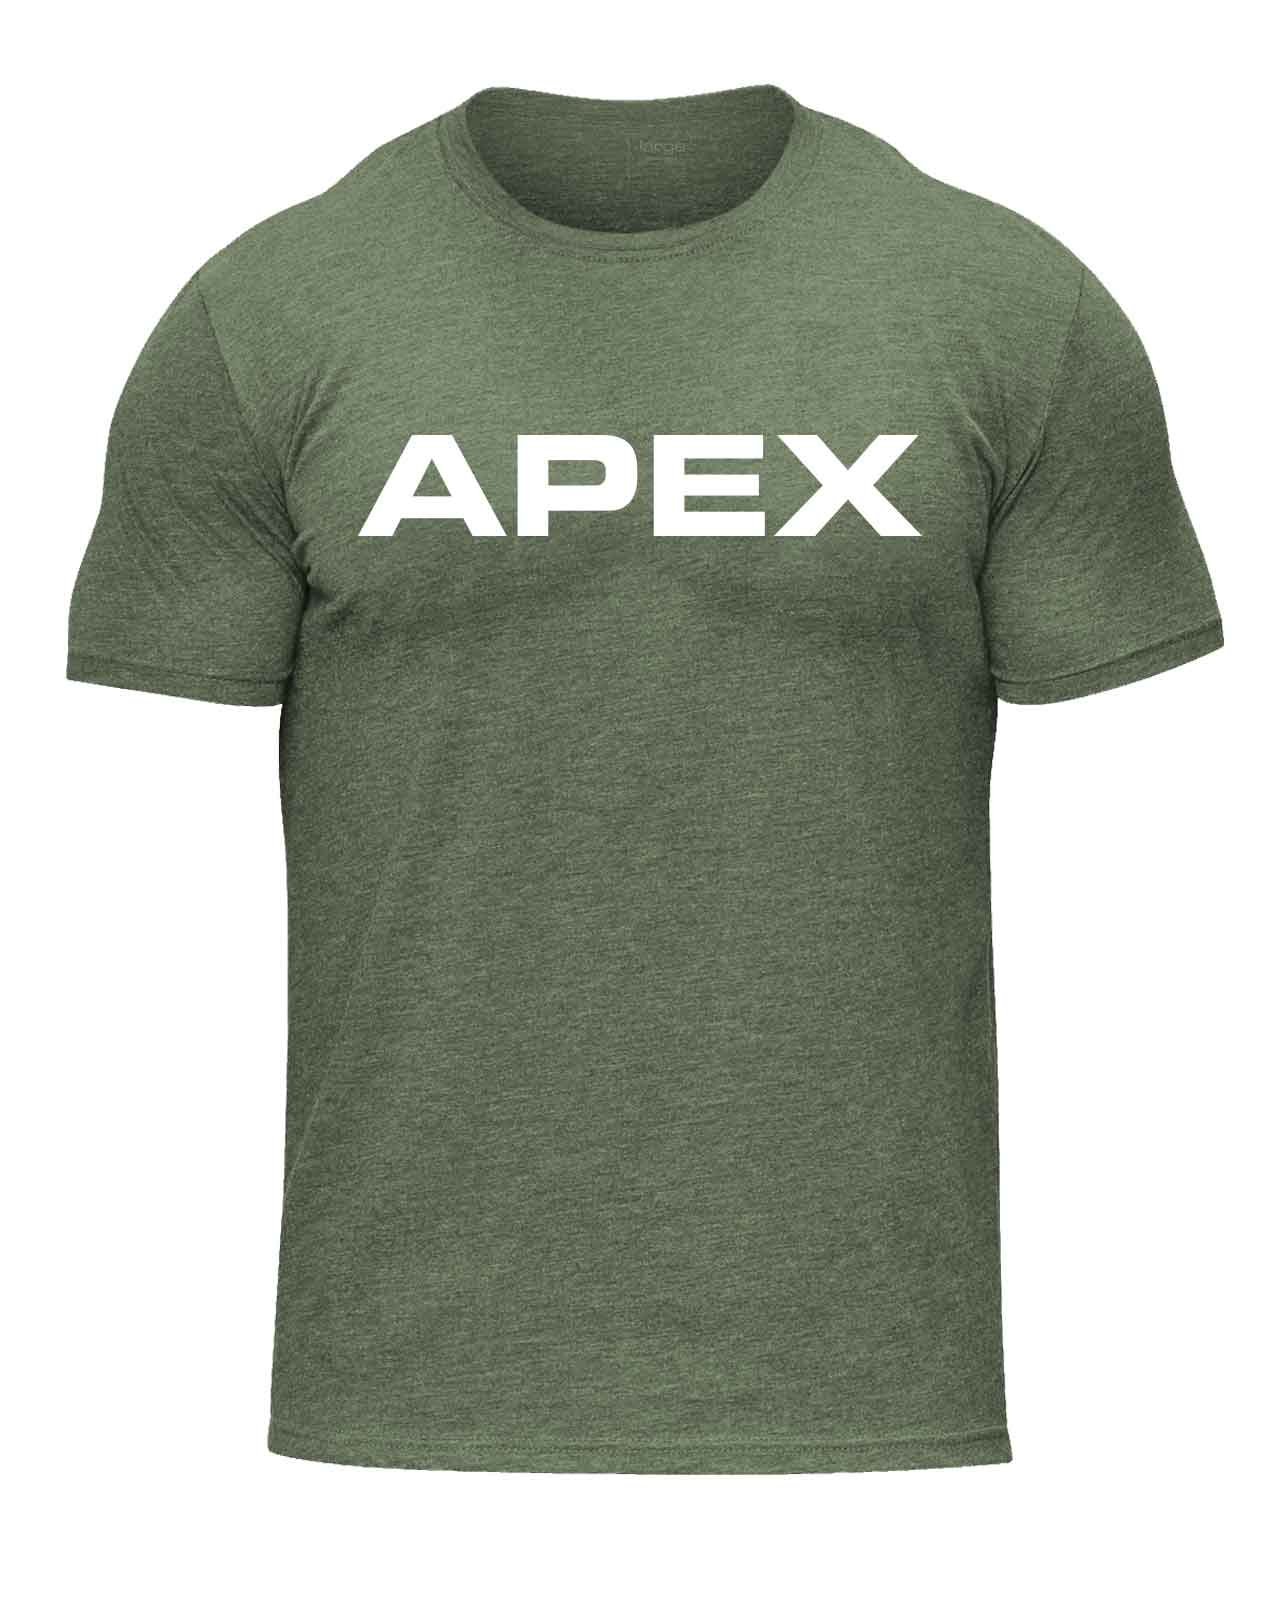 SIGNATURE TEE - MILITARY GREEN - Apex Fitness Co.